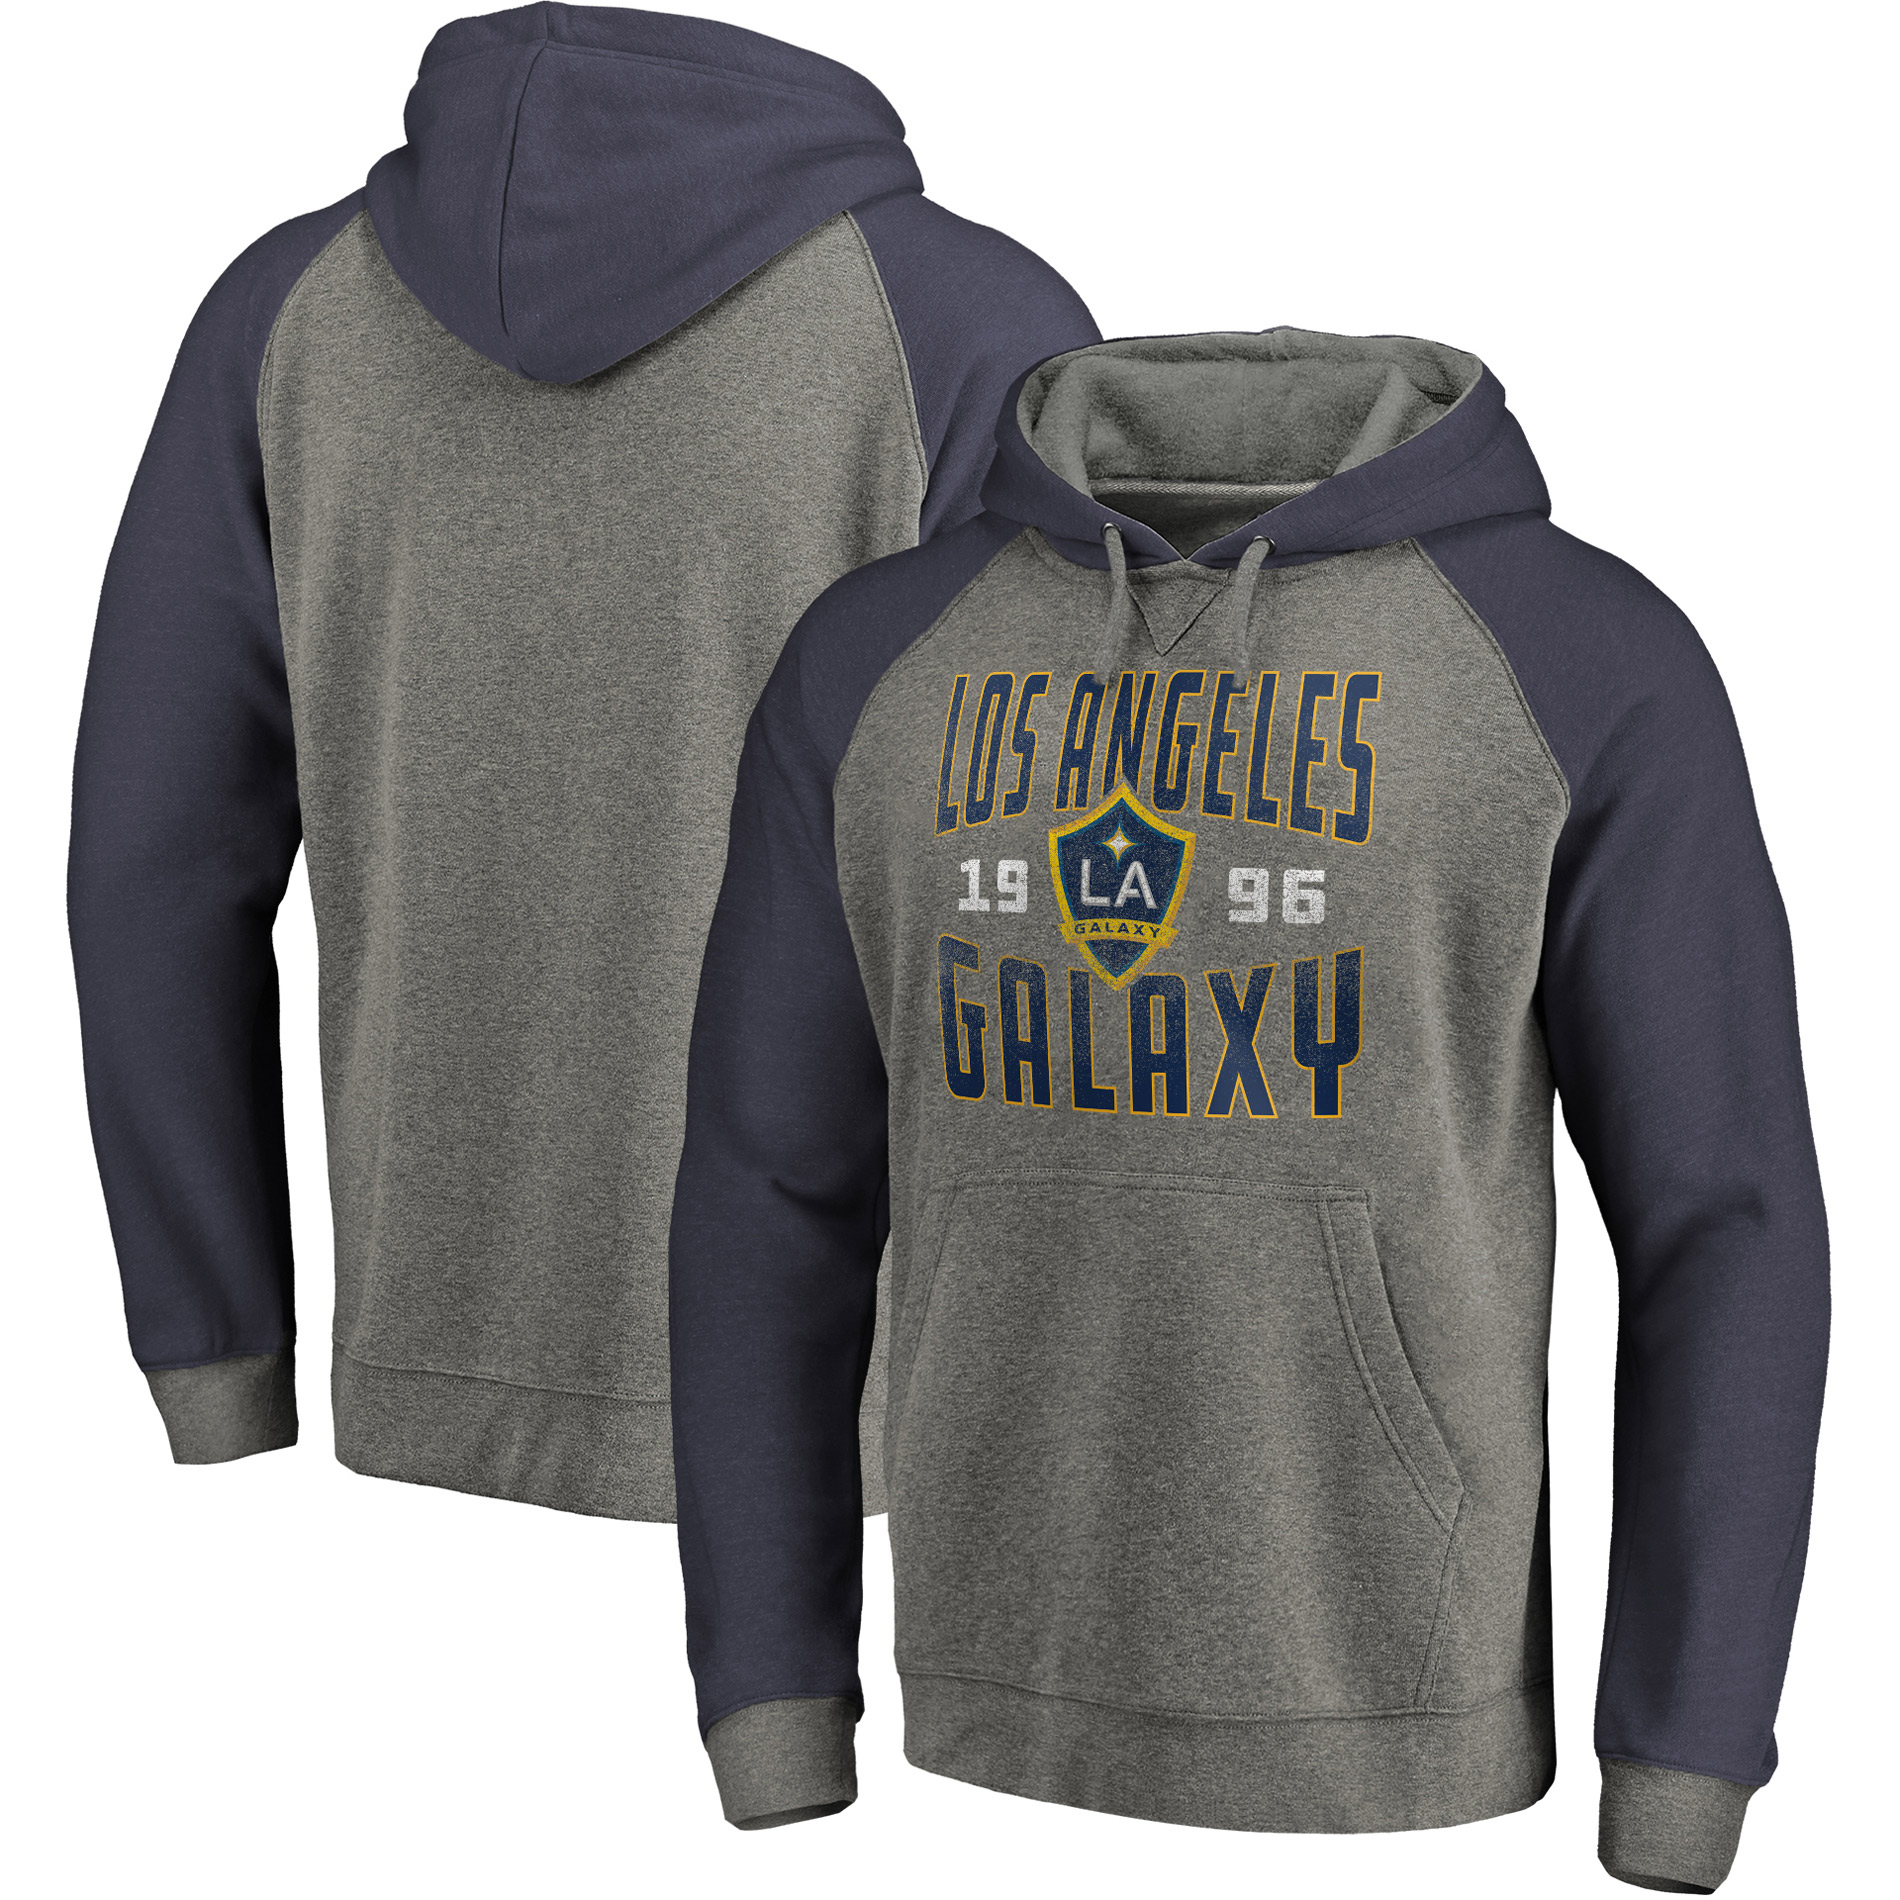 LA Galaxy Fanatics Branded Antique Stack Tri-Blend Pullover Hoodie - Heathered Gray/Navy